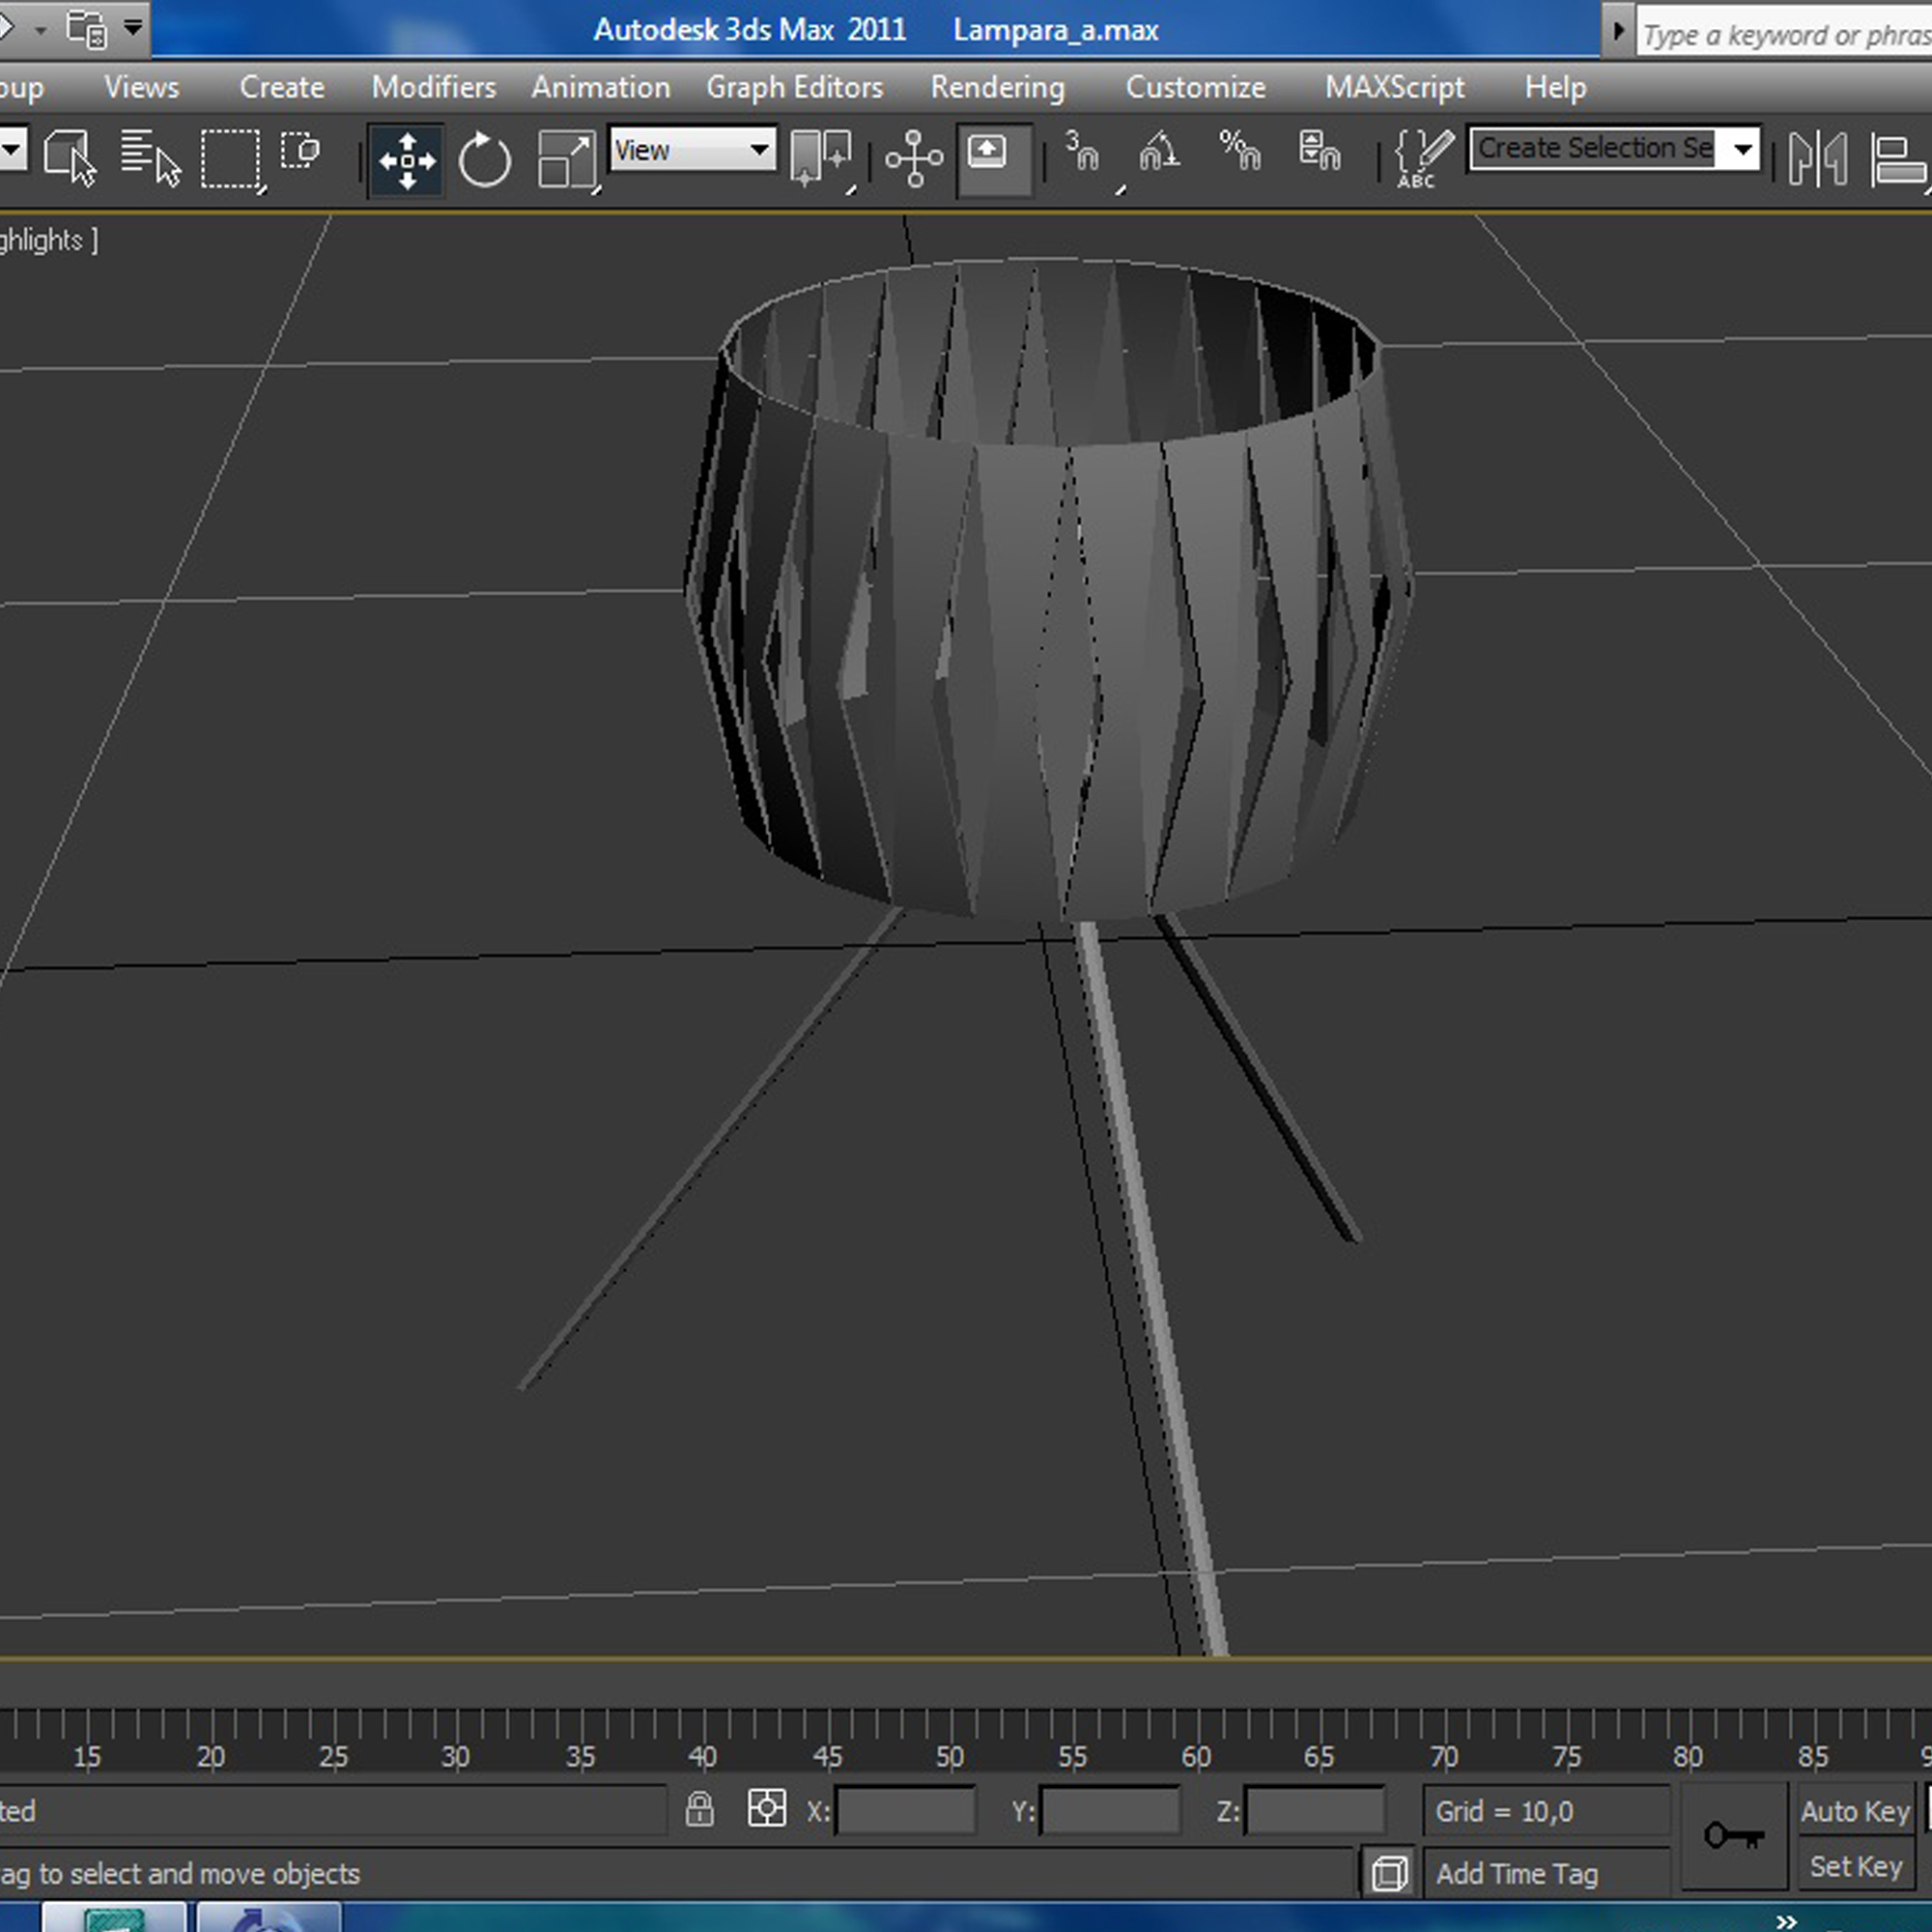 vanity lamp 3d model 3ds max fbx ma mb obj 157292